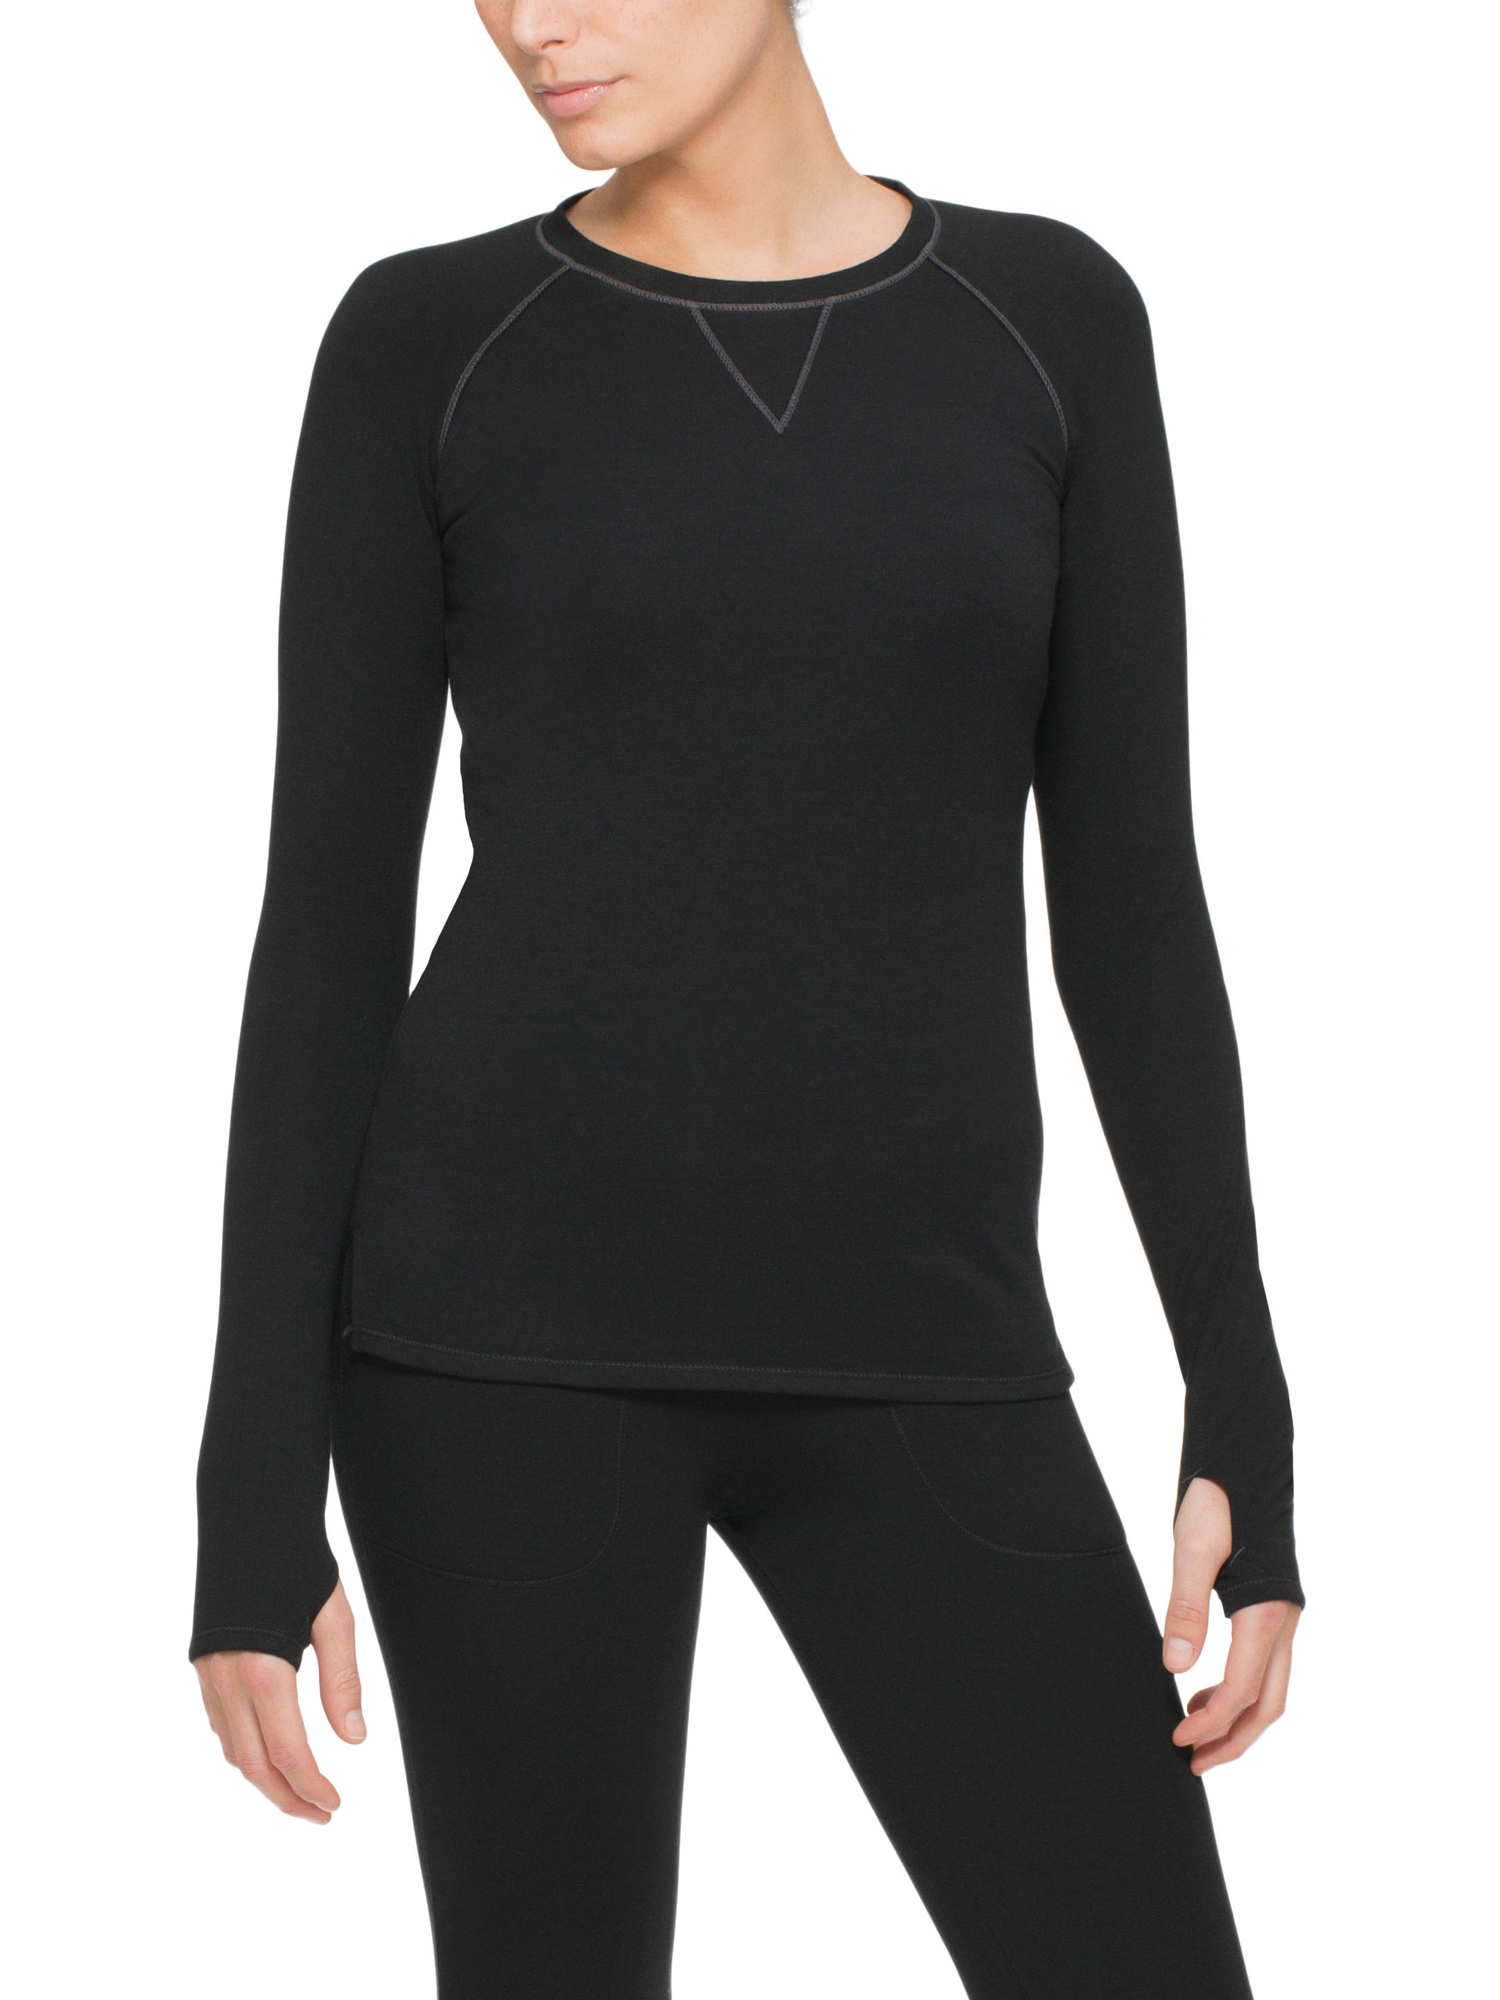 ClimateRight by Cuddl Duds Women's and Women's Plus Comfort Core Warm Long Underwear Top